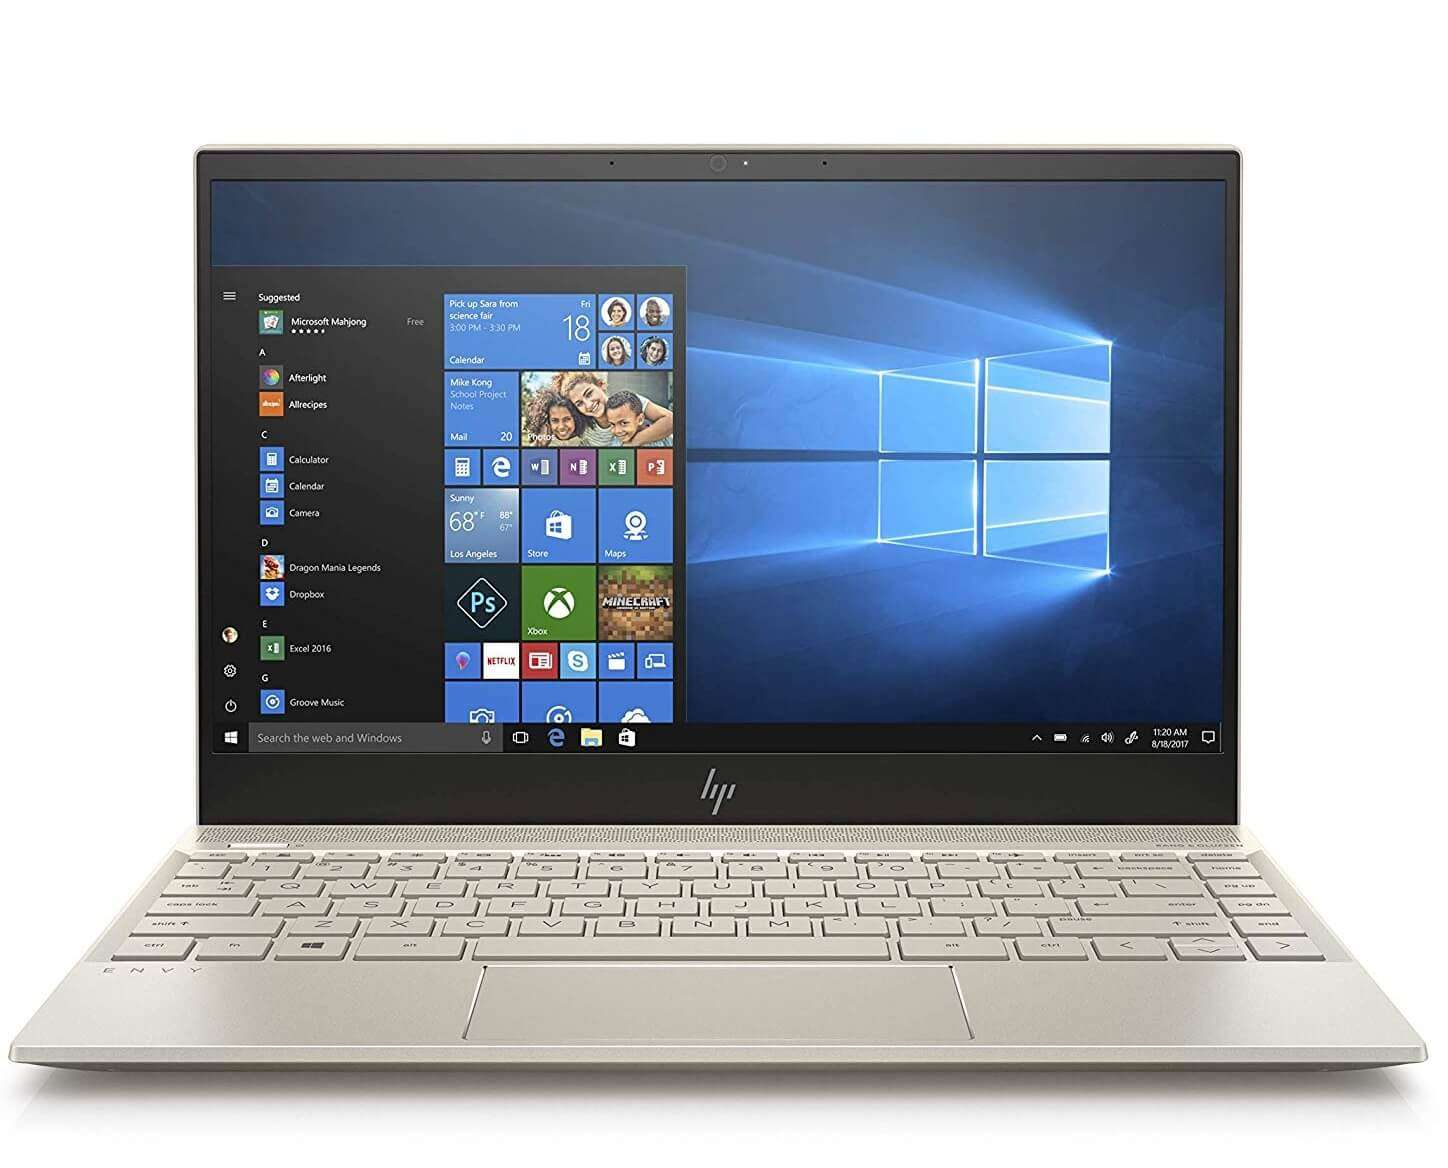 hp Envy 13-ah1003ne Notebook With 13.3-Inch Display, Core i7 Processor/8GB/1TB SDD/2GB NVIDIA GeForce MX150 Graphic Card With English/Arabic Keyboard Pale Gold